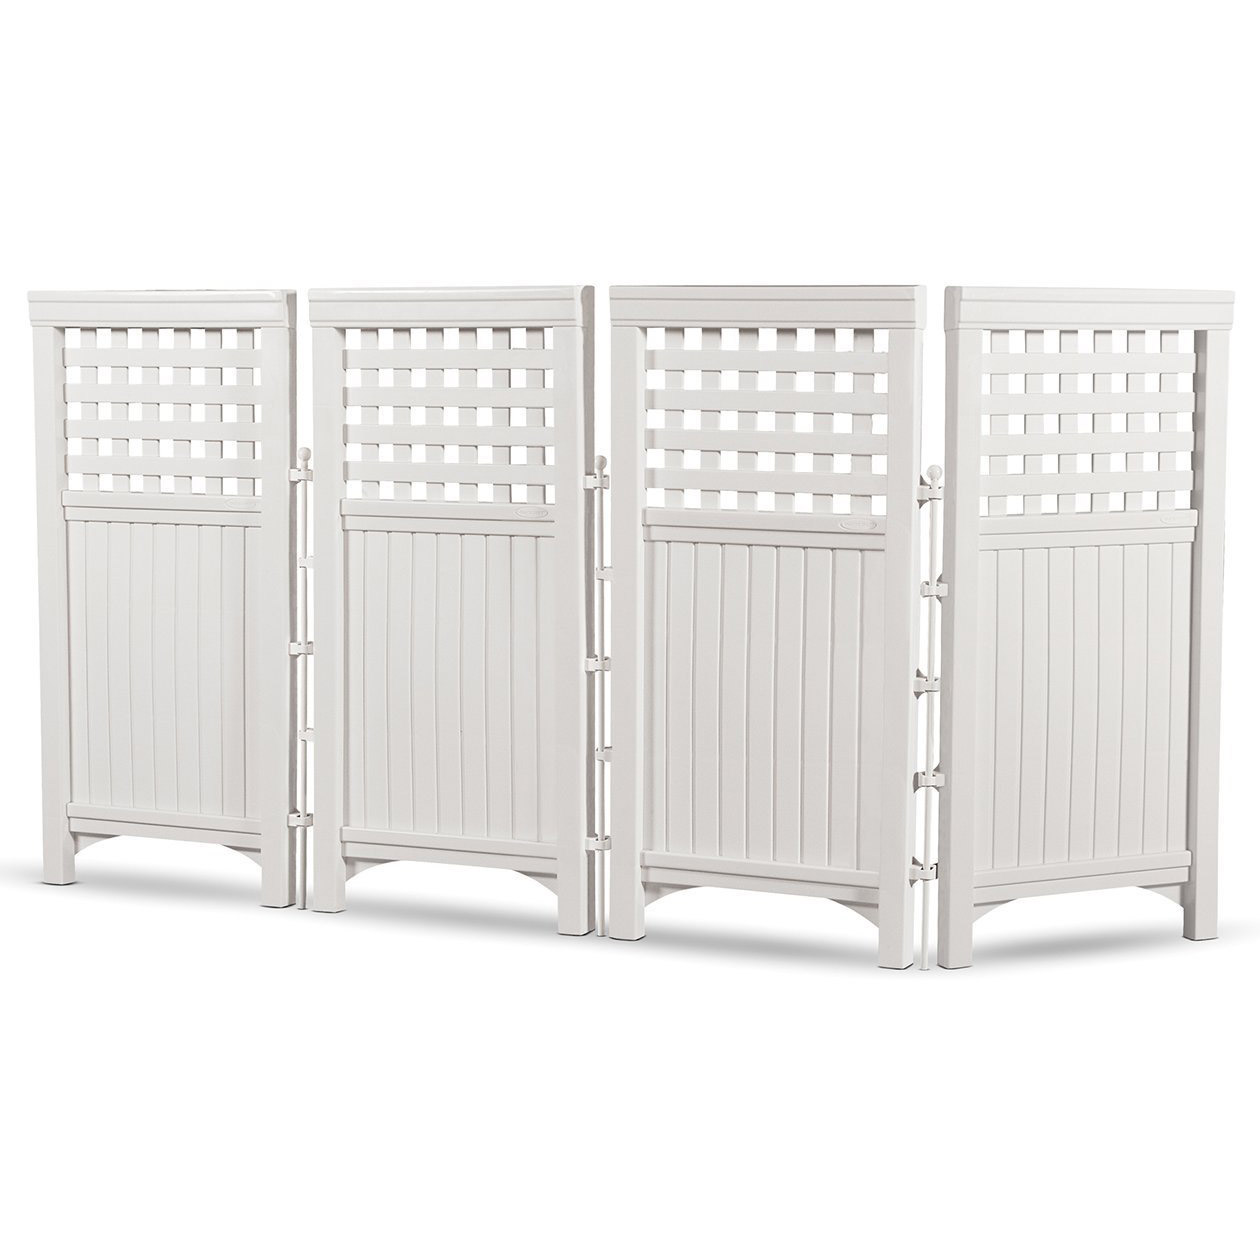 Suncast Outdoor Garden Yard 4 Panel Screen Enclosure Gated Fence, White FS4423 by Suncast